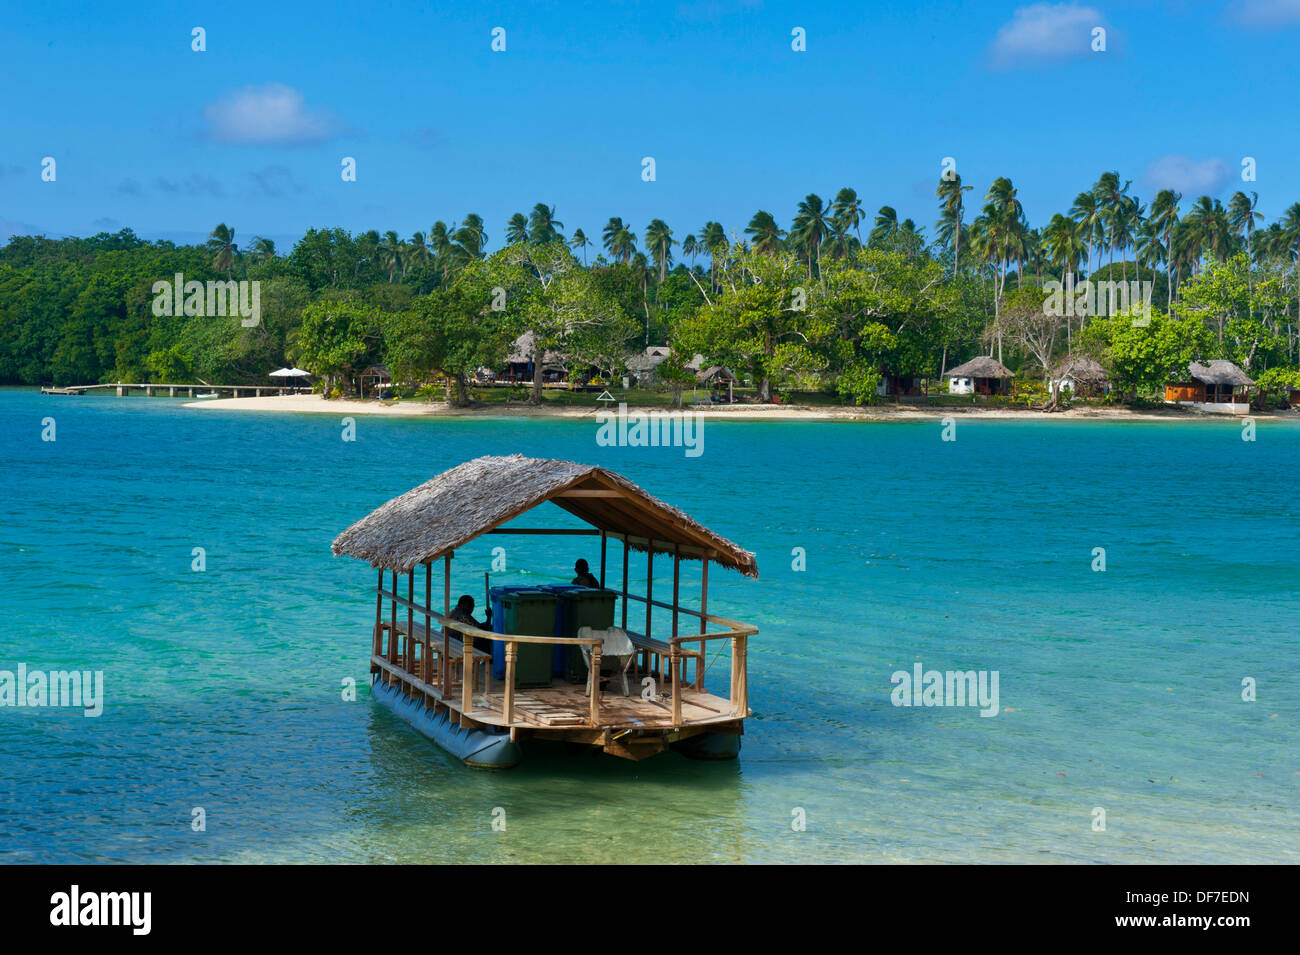 View across the bay towards Oyster Island Resort, Espiritu Santo, Sanma Province, Vanuatu - Stock Image